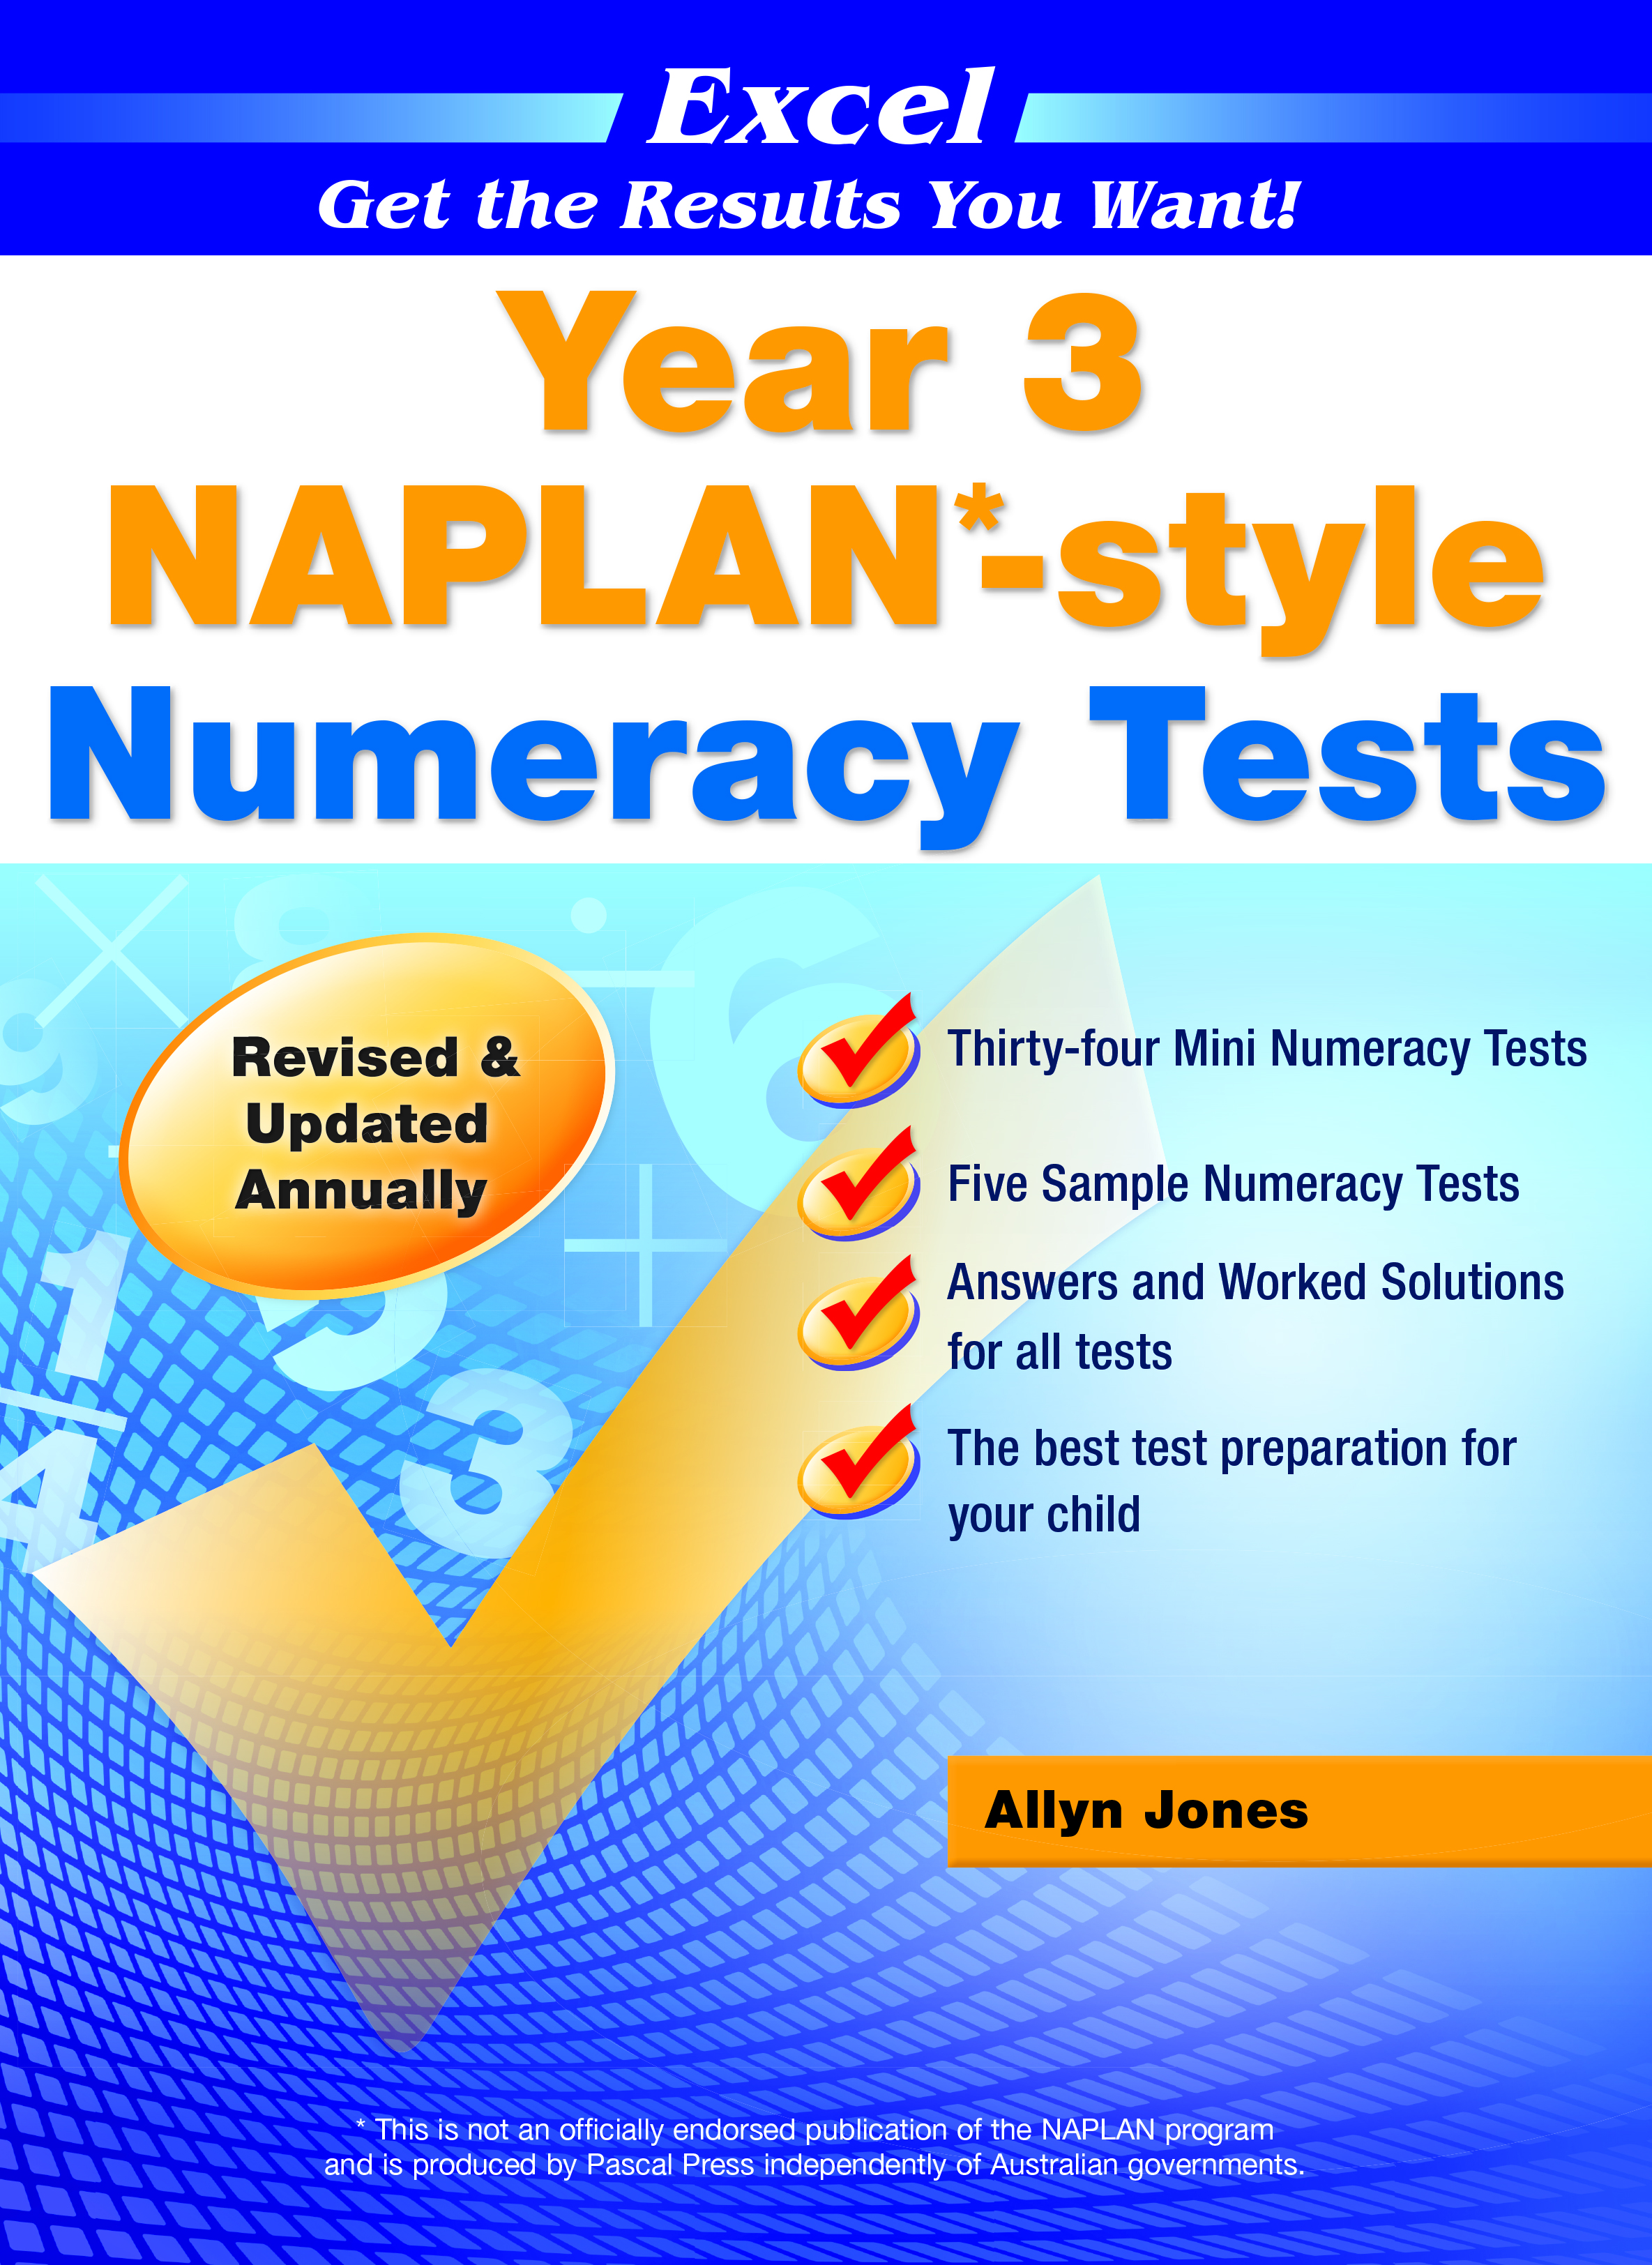 Excel NAPLAN*-style Numeracy Tests Year 3